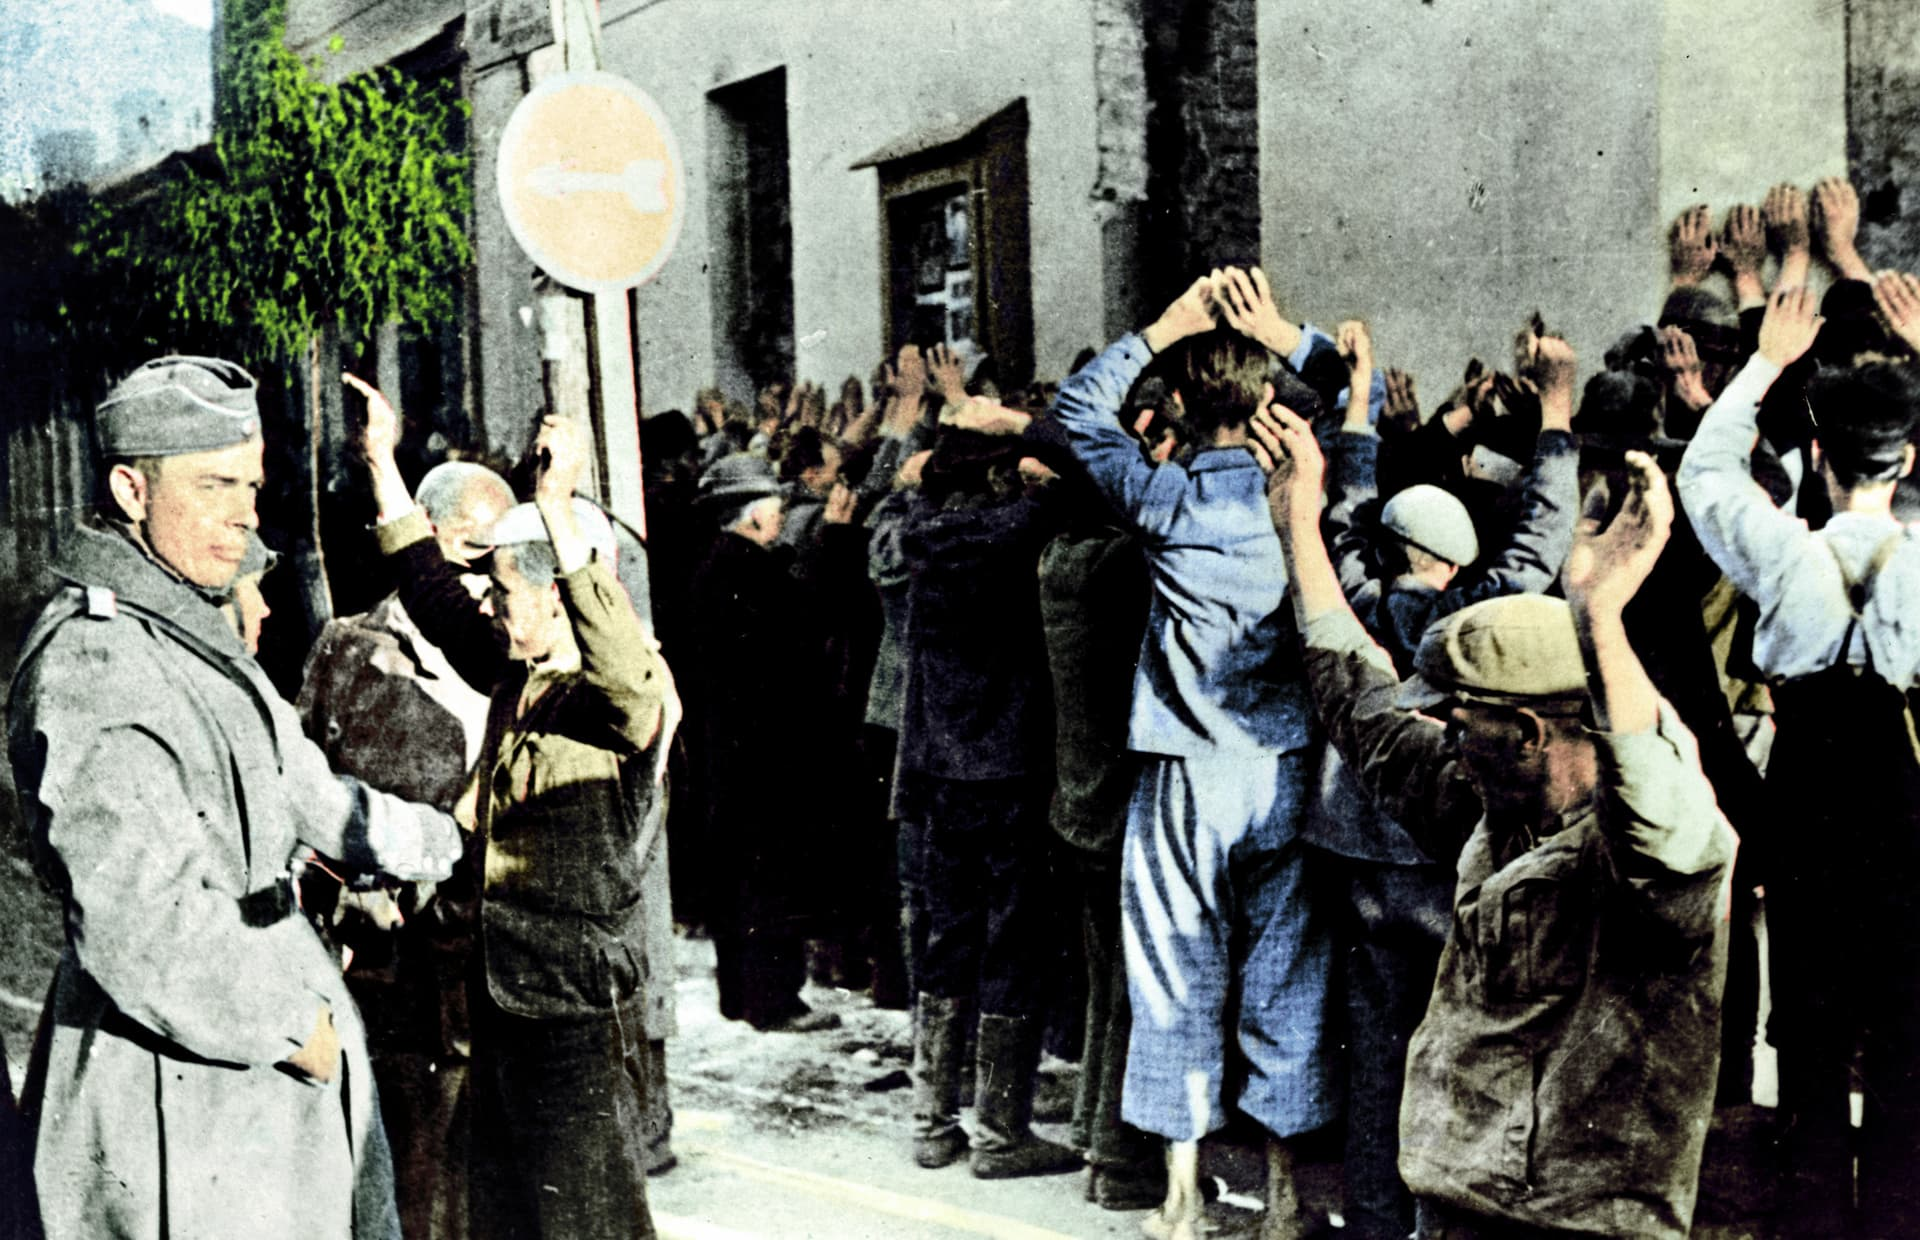 Jews_rounded_up_in_Warsaw_cph.3c32739